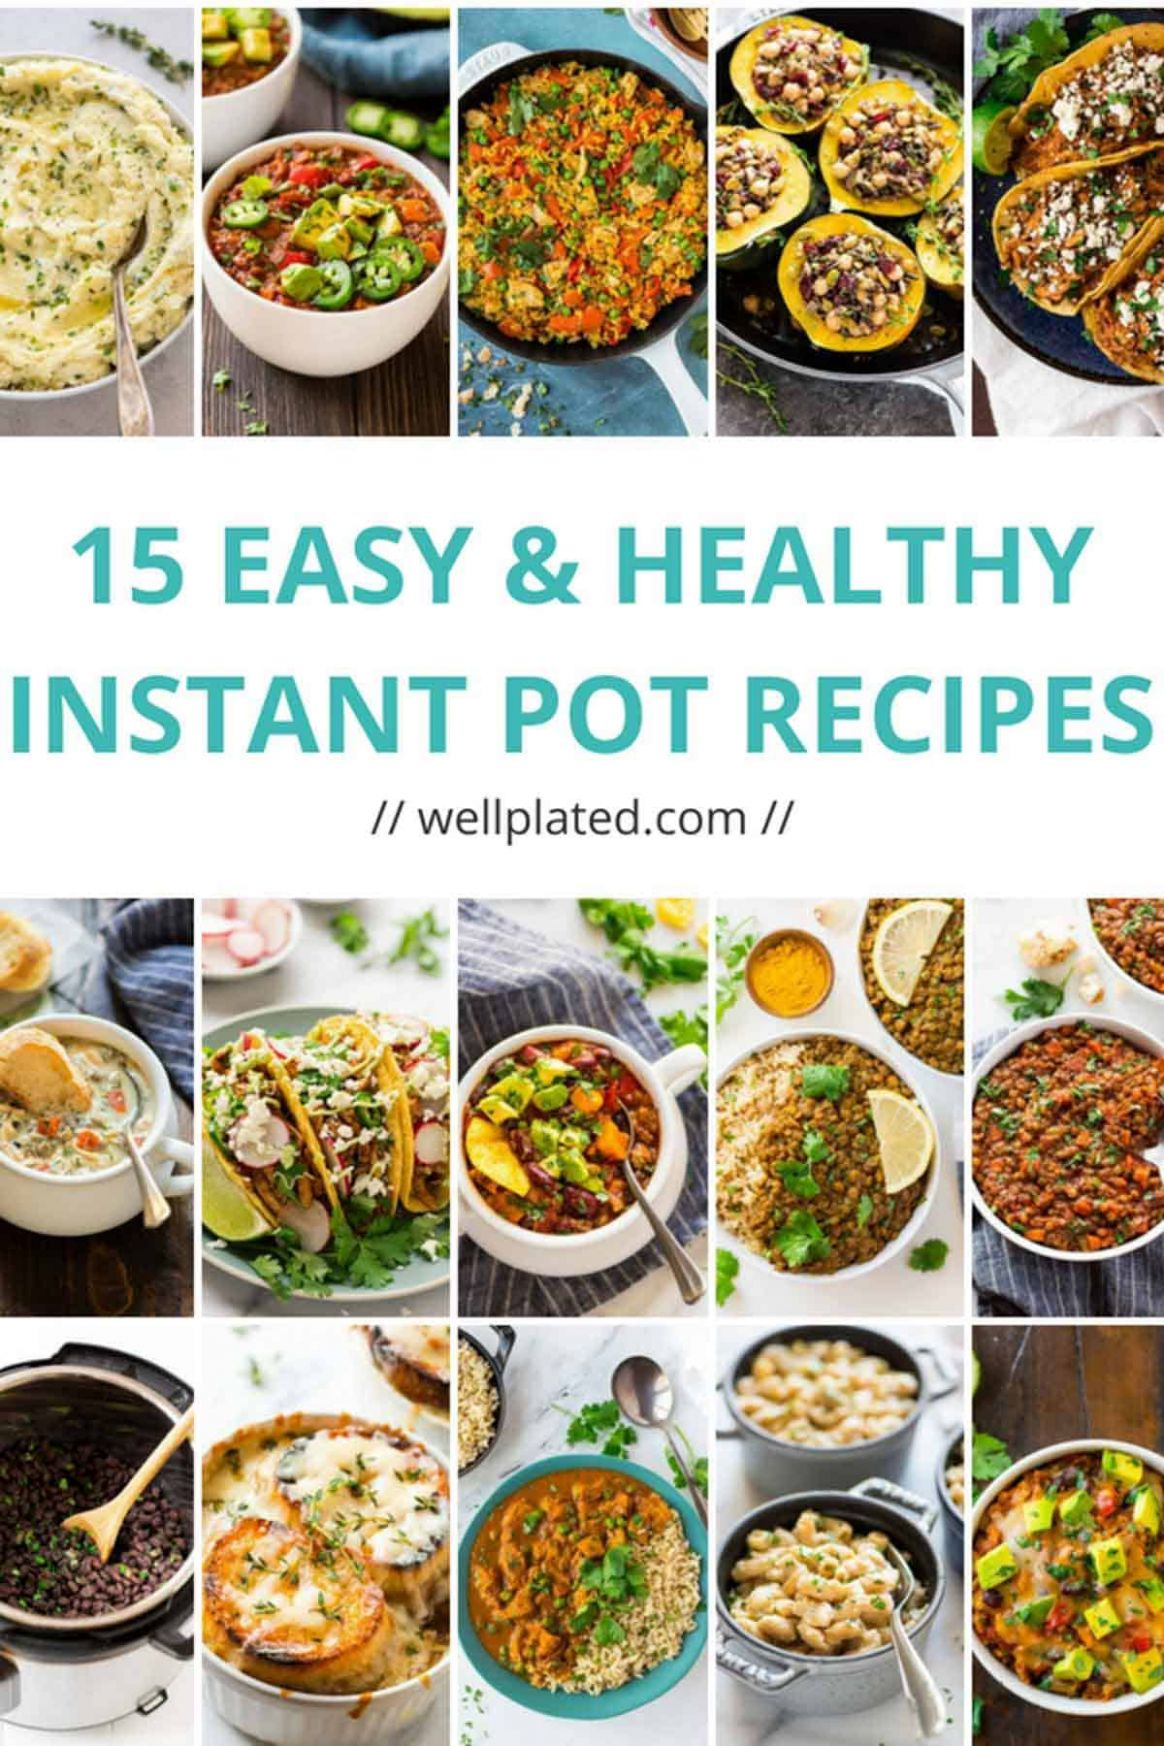 11 Healthy Instant Pot Recipes That Anyone Can Make - Easy Recipes Instant Pot